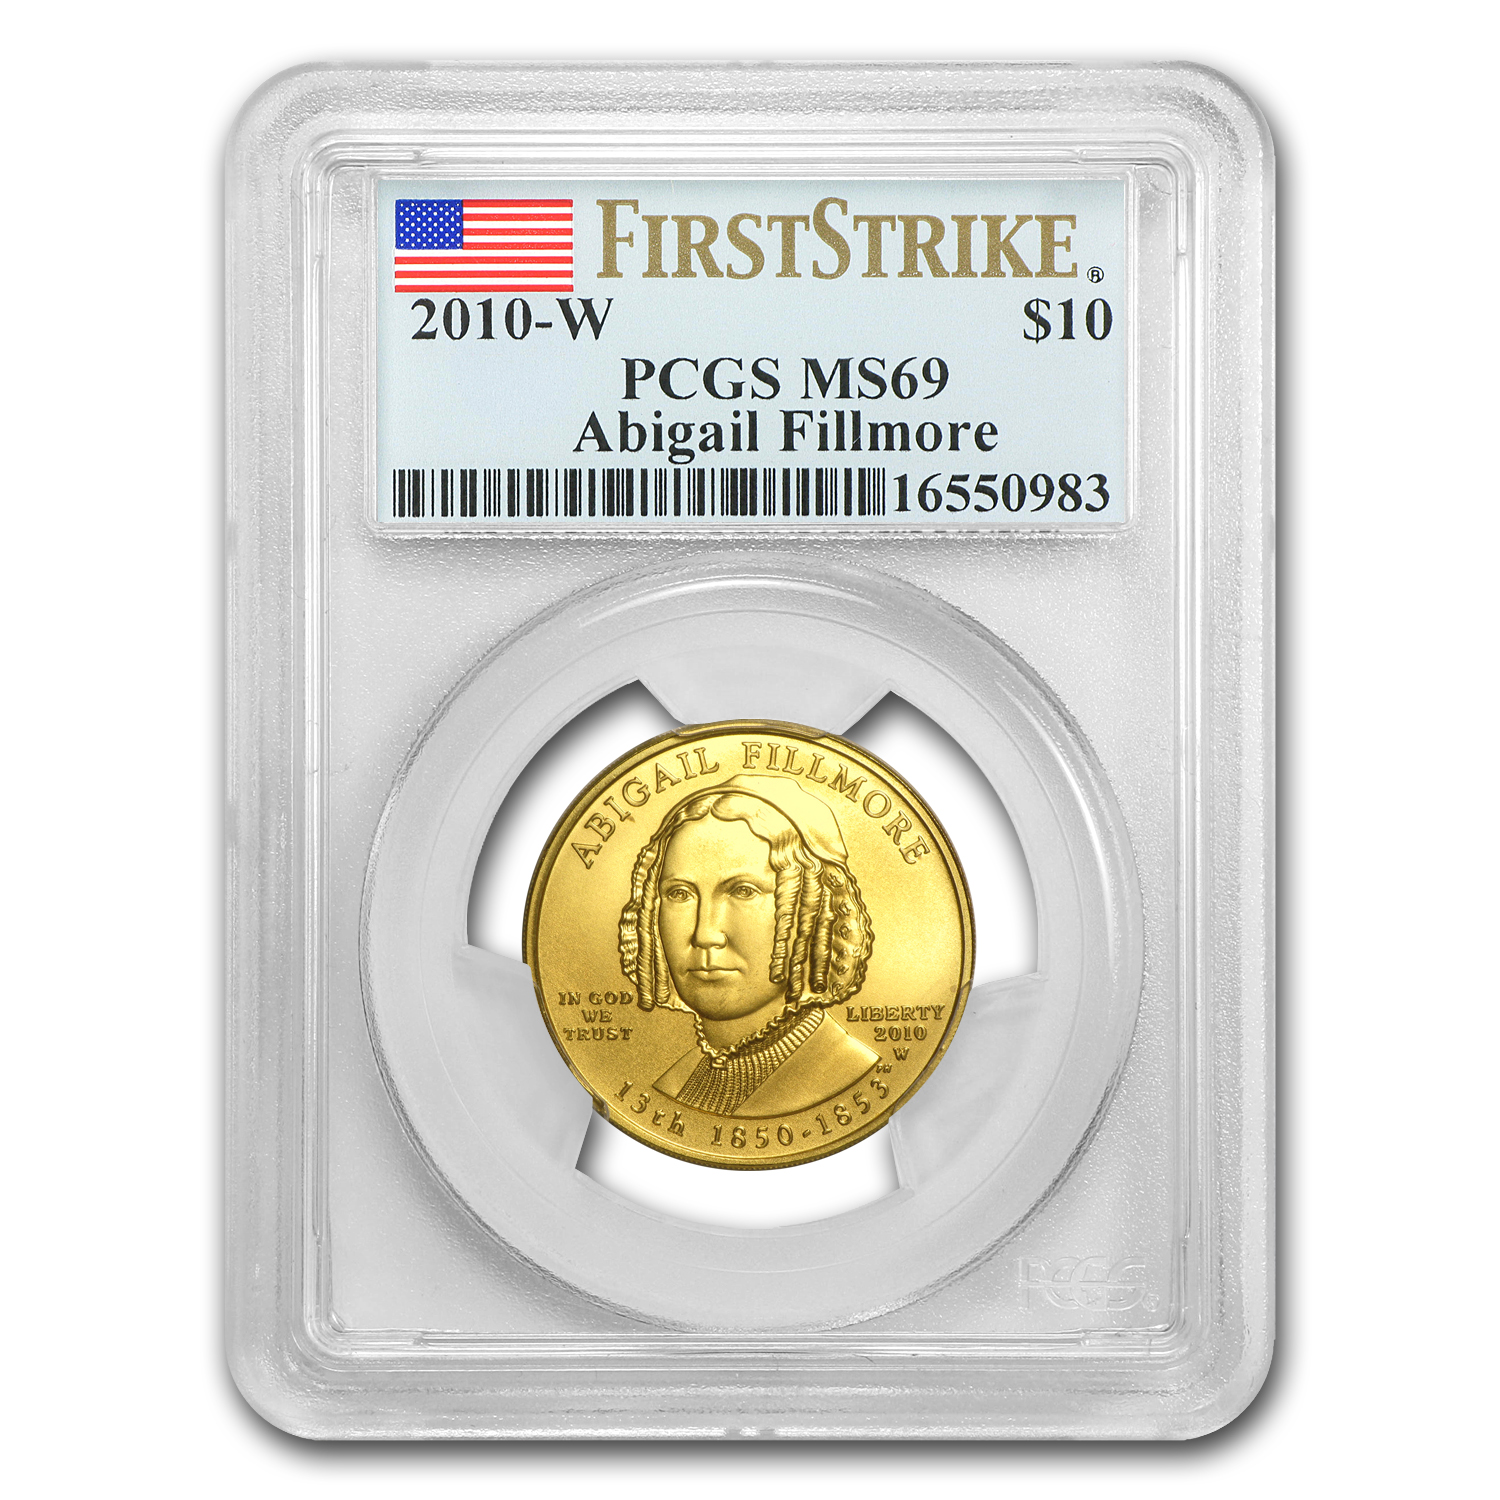 2010-W 1/2 oz Gold Abigail Fillmore MS-69 PCGS (First Strike)